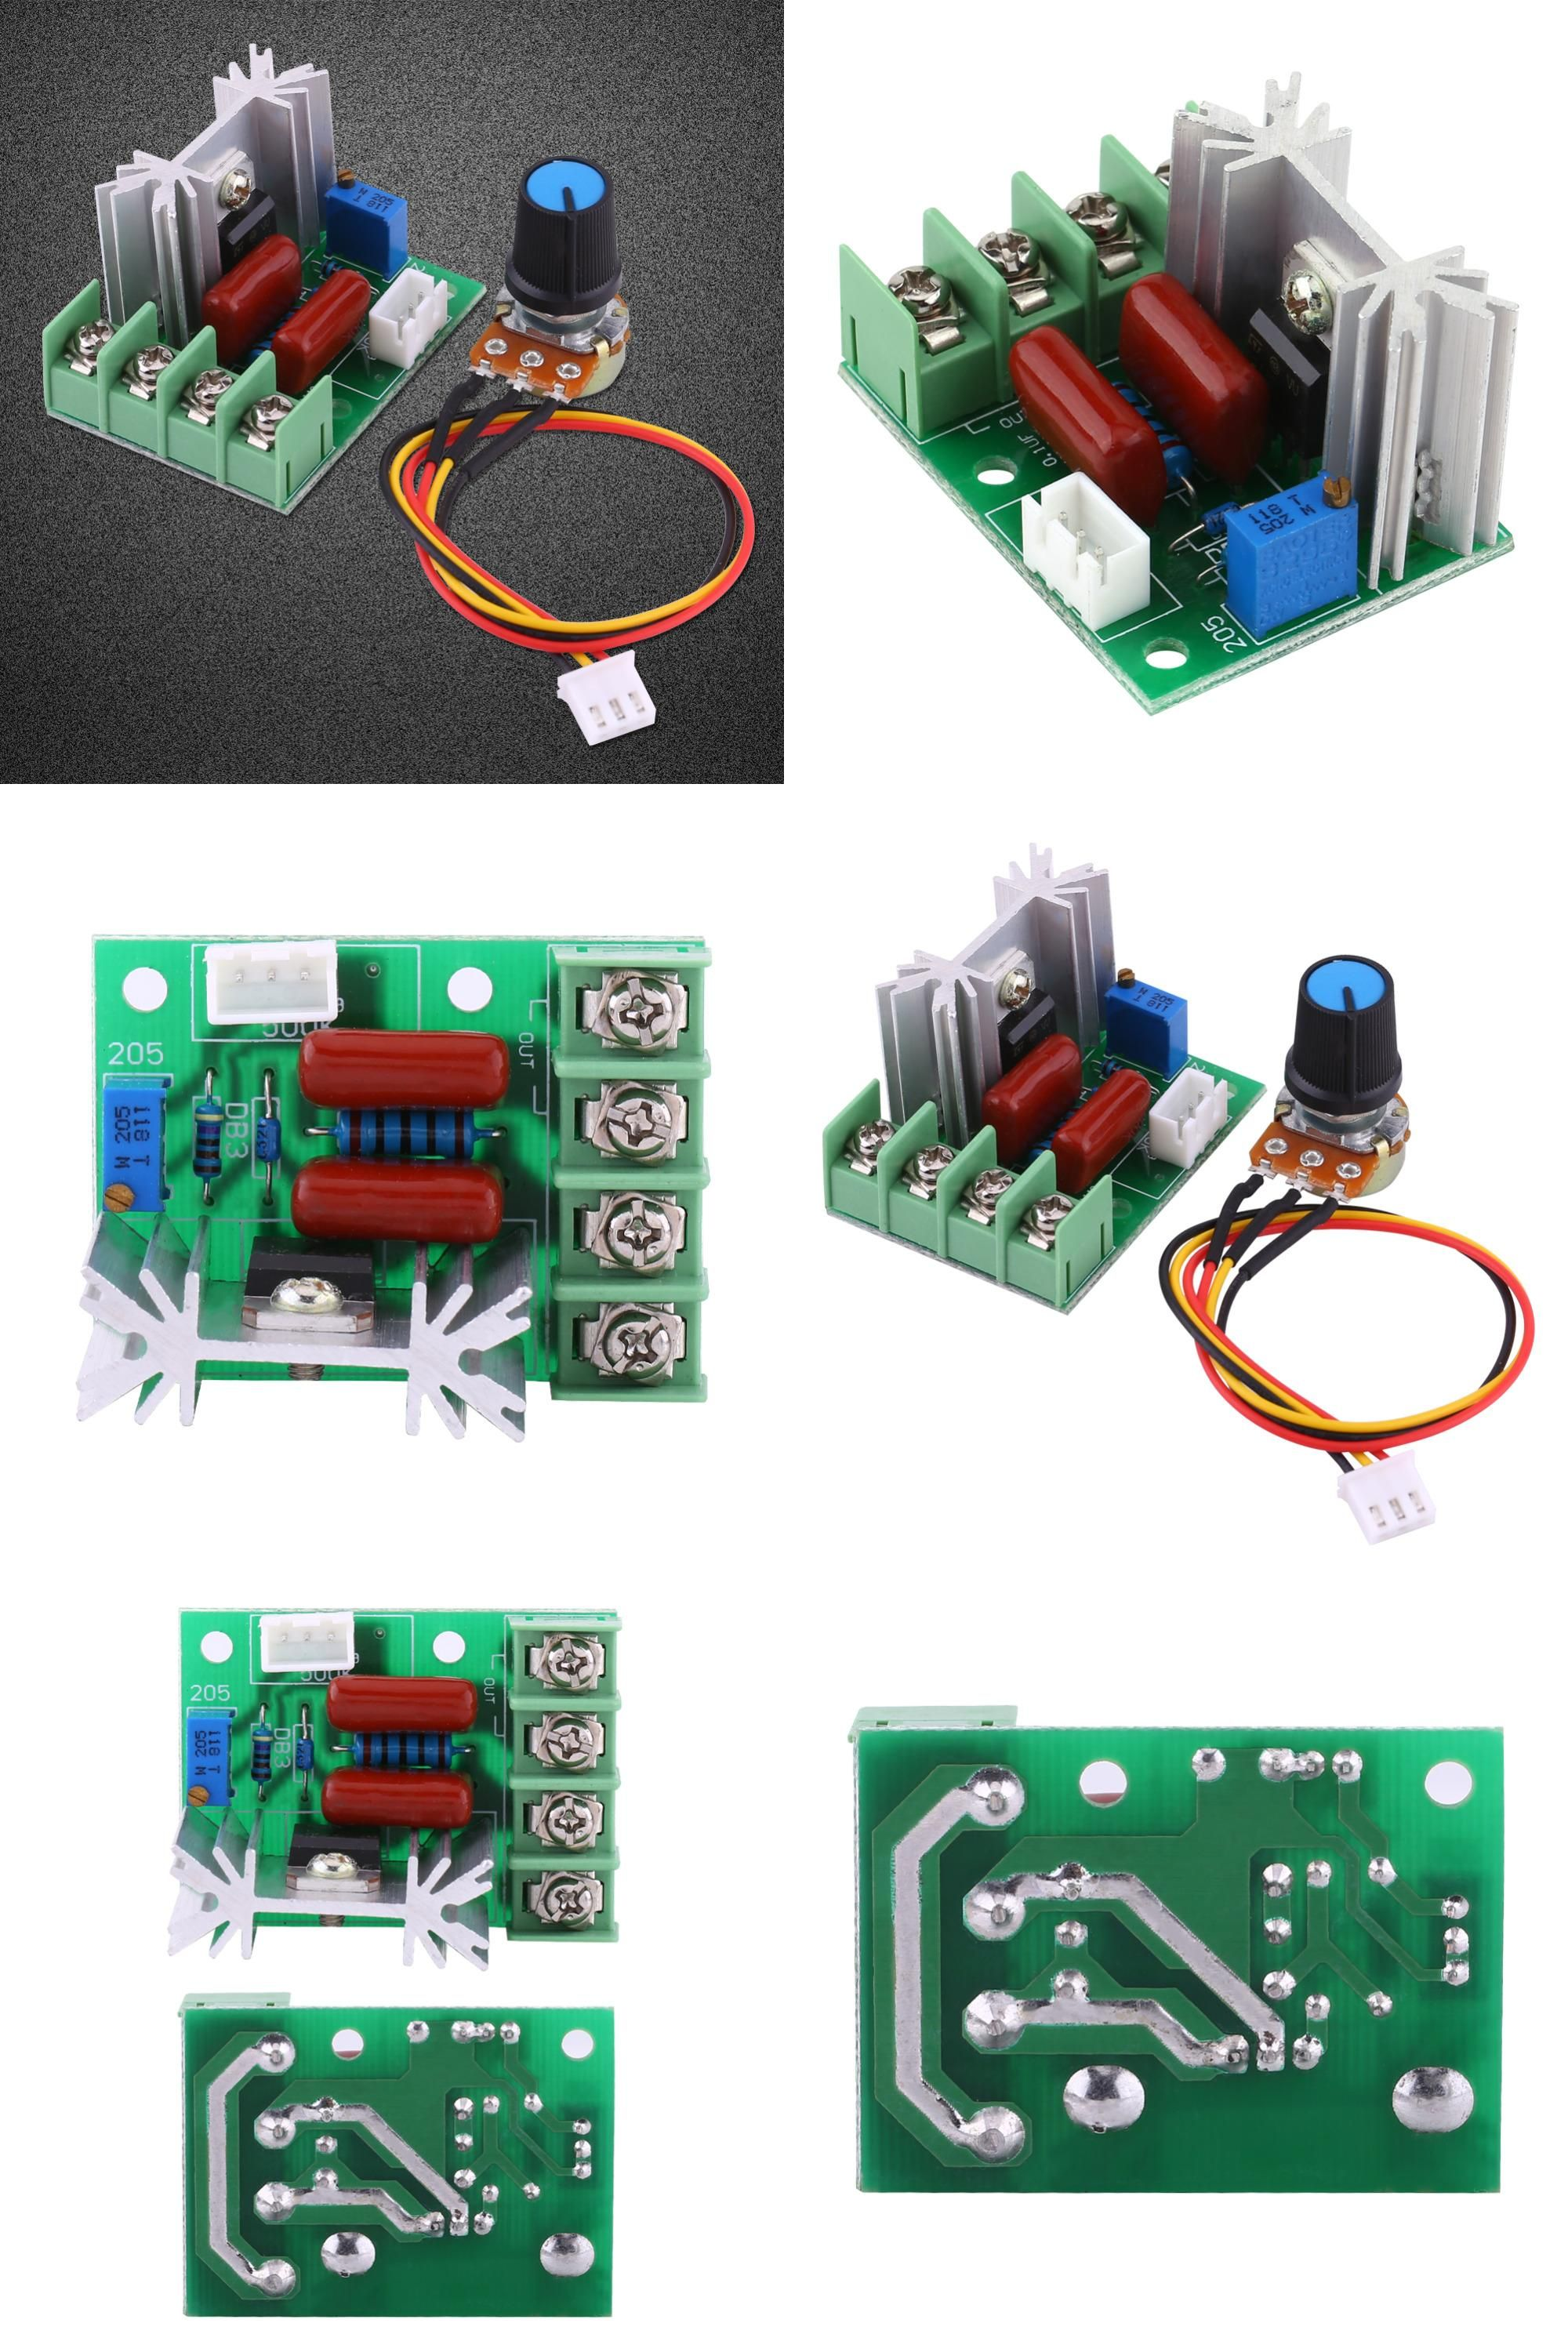 Visit To Buy 2000w Voltage Regulator 50 220v Ac Big Power Scr Motor Speed Picture Control Of Using Electric